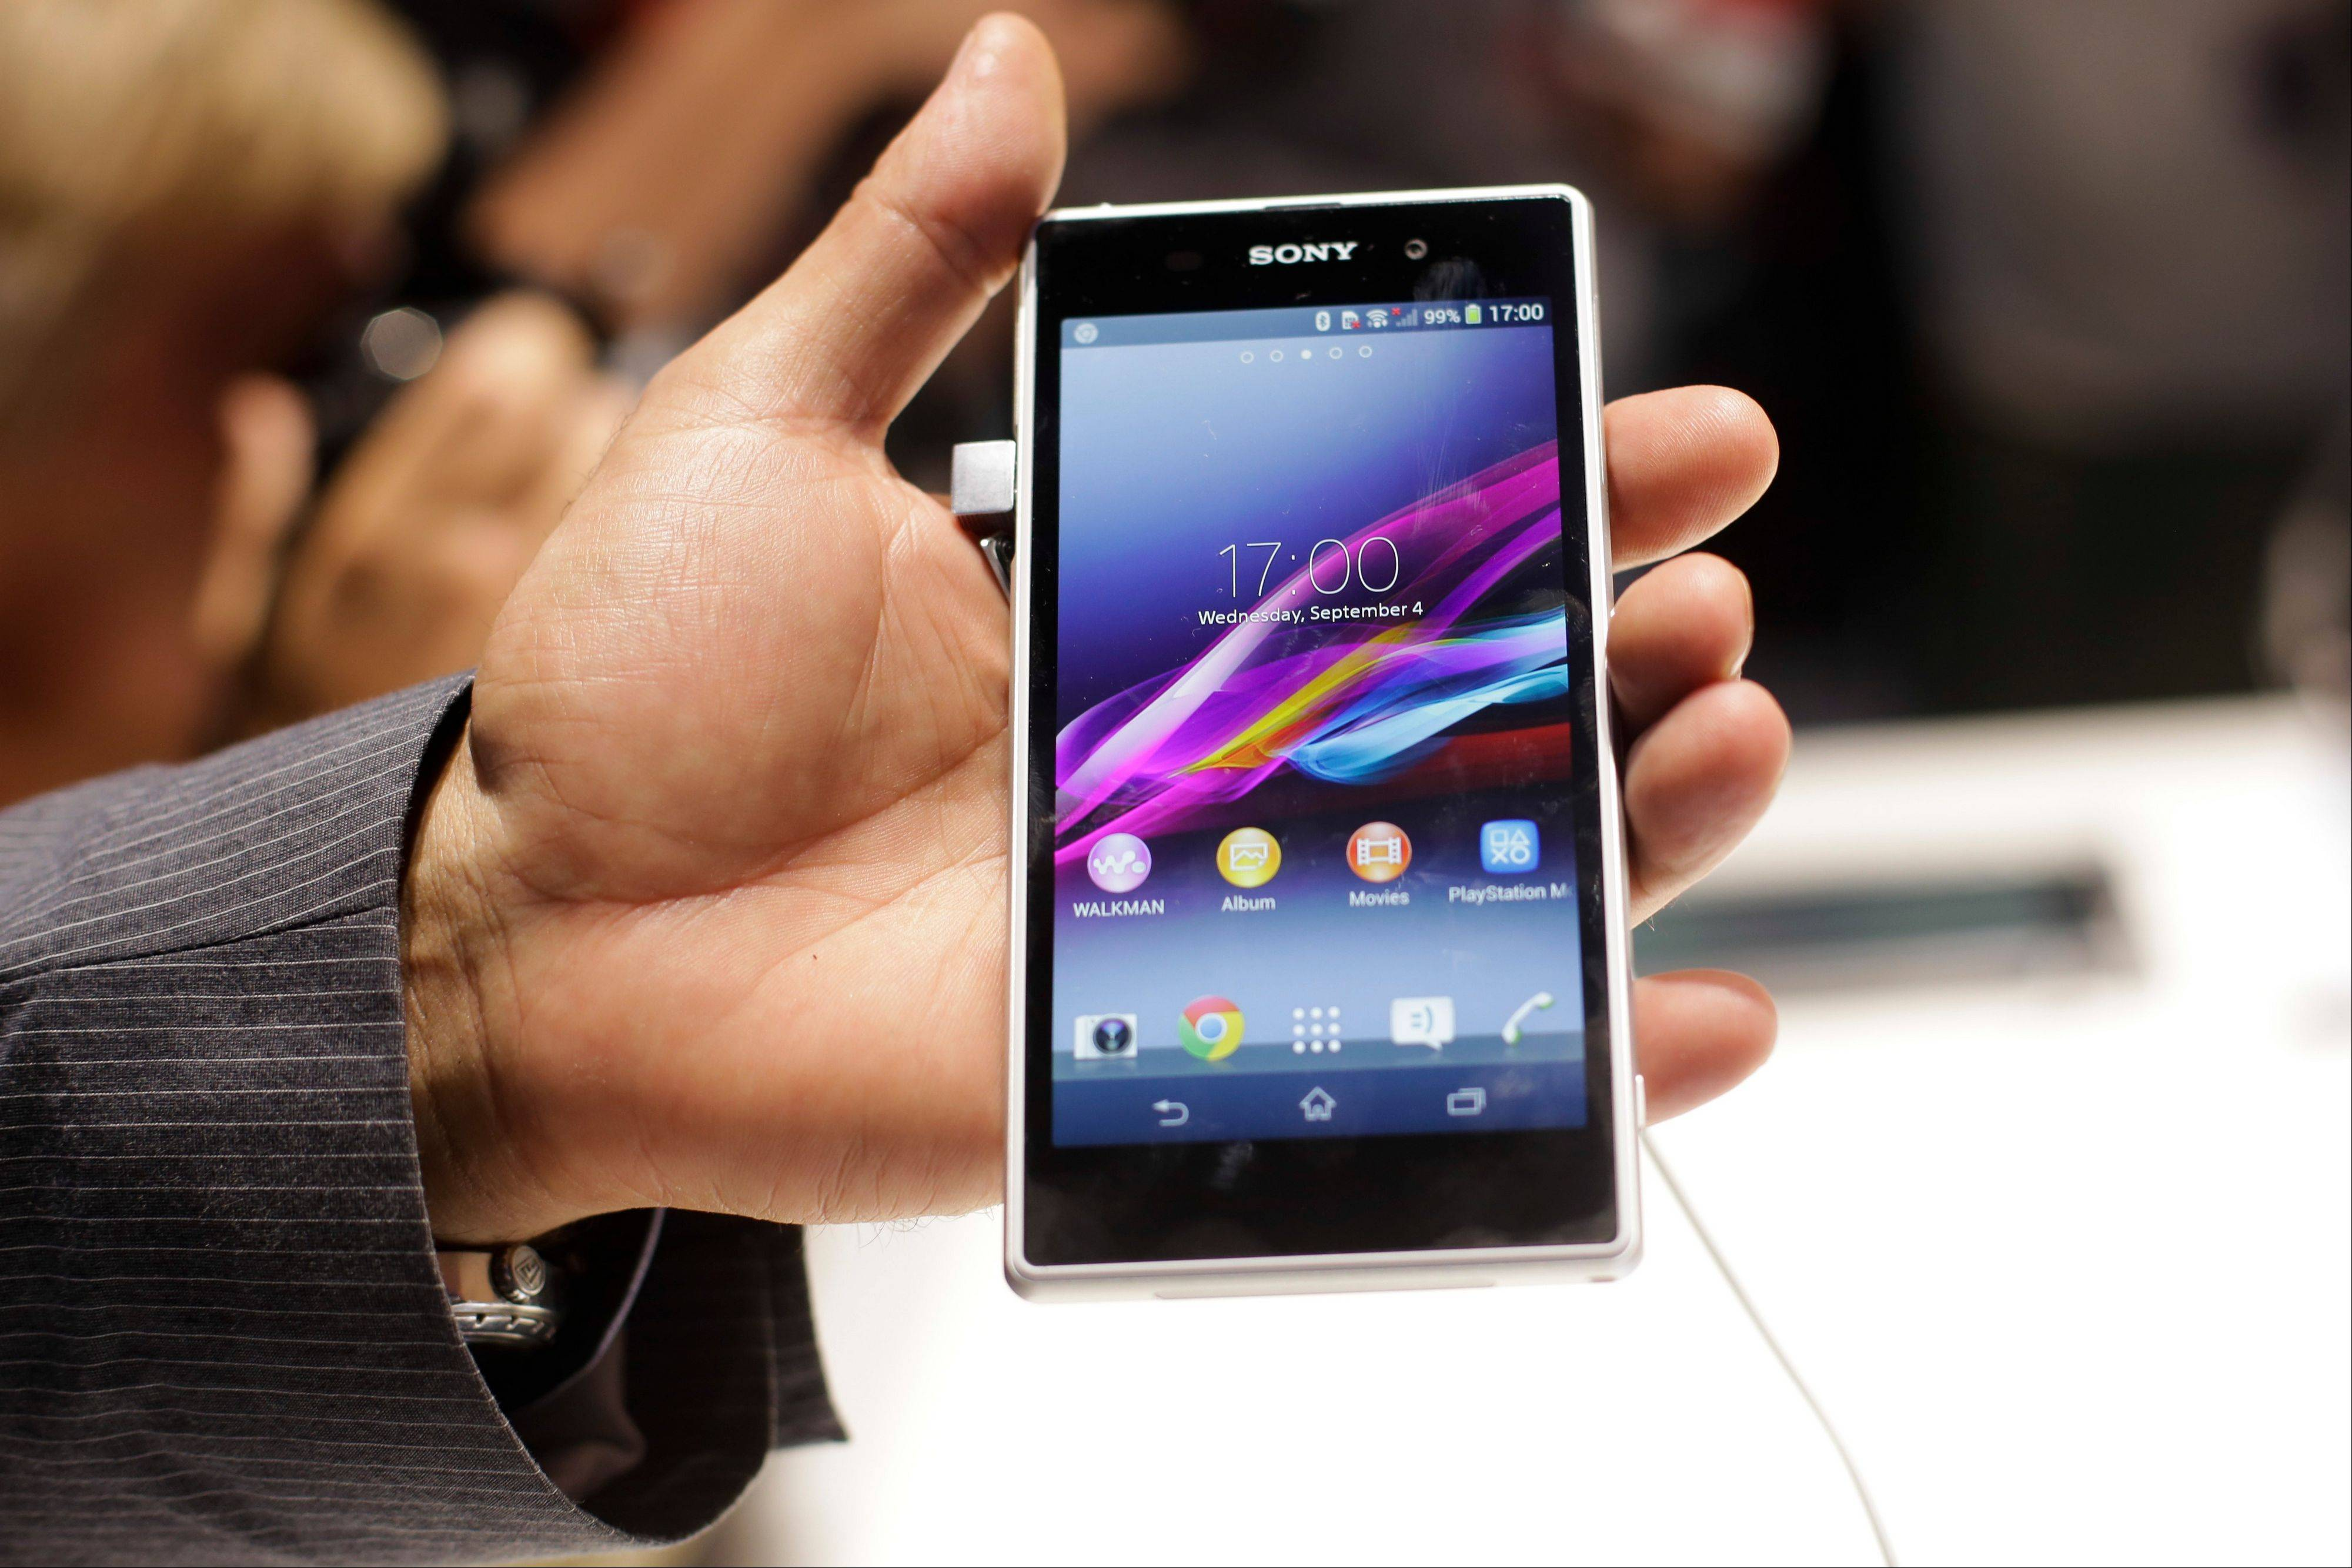 A man shows the new Sony Xperia Z1 smartphone at a Sony event ahead of the IFA, one of the world's largest trade fairs for consumer electronics and electrical home appliances, in Berlin.